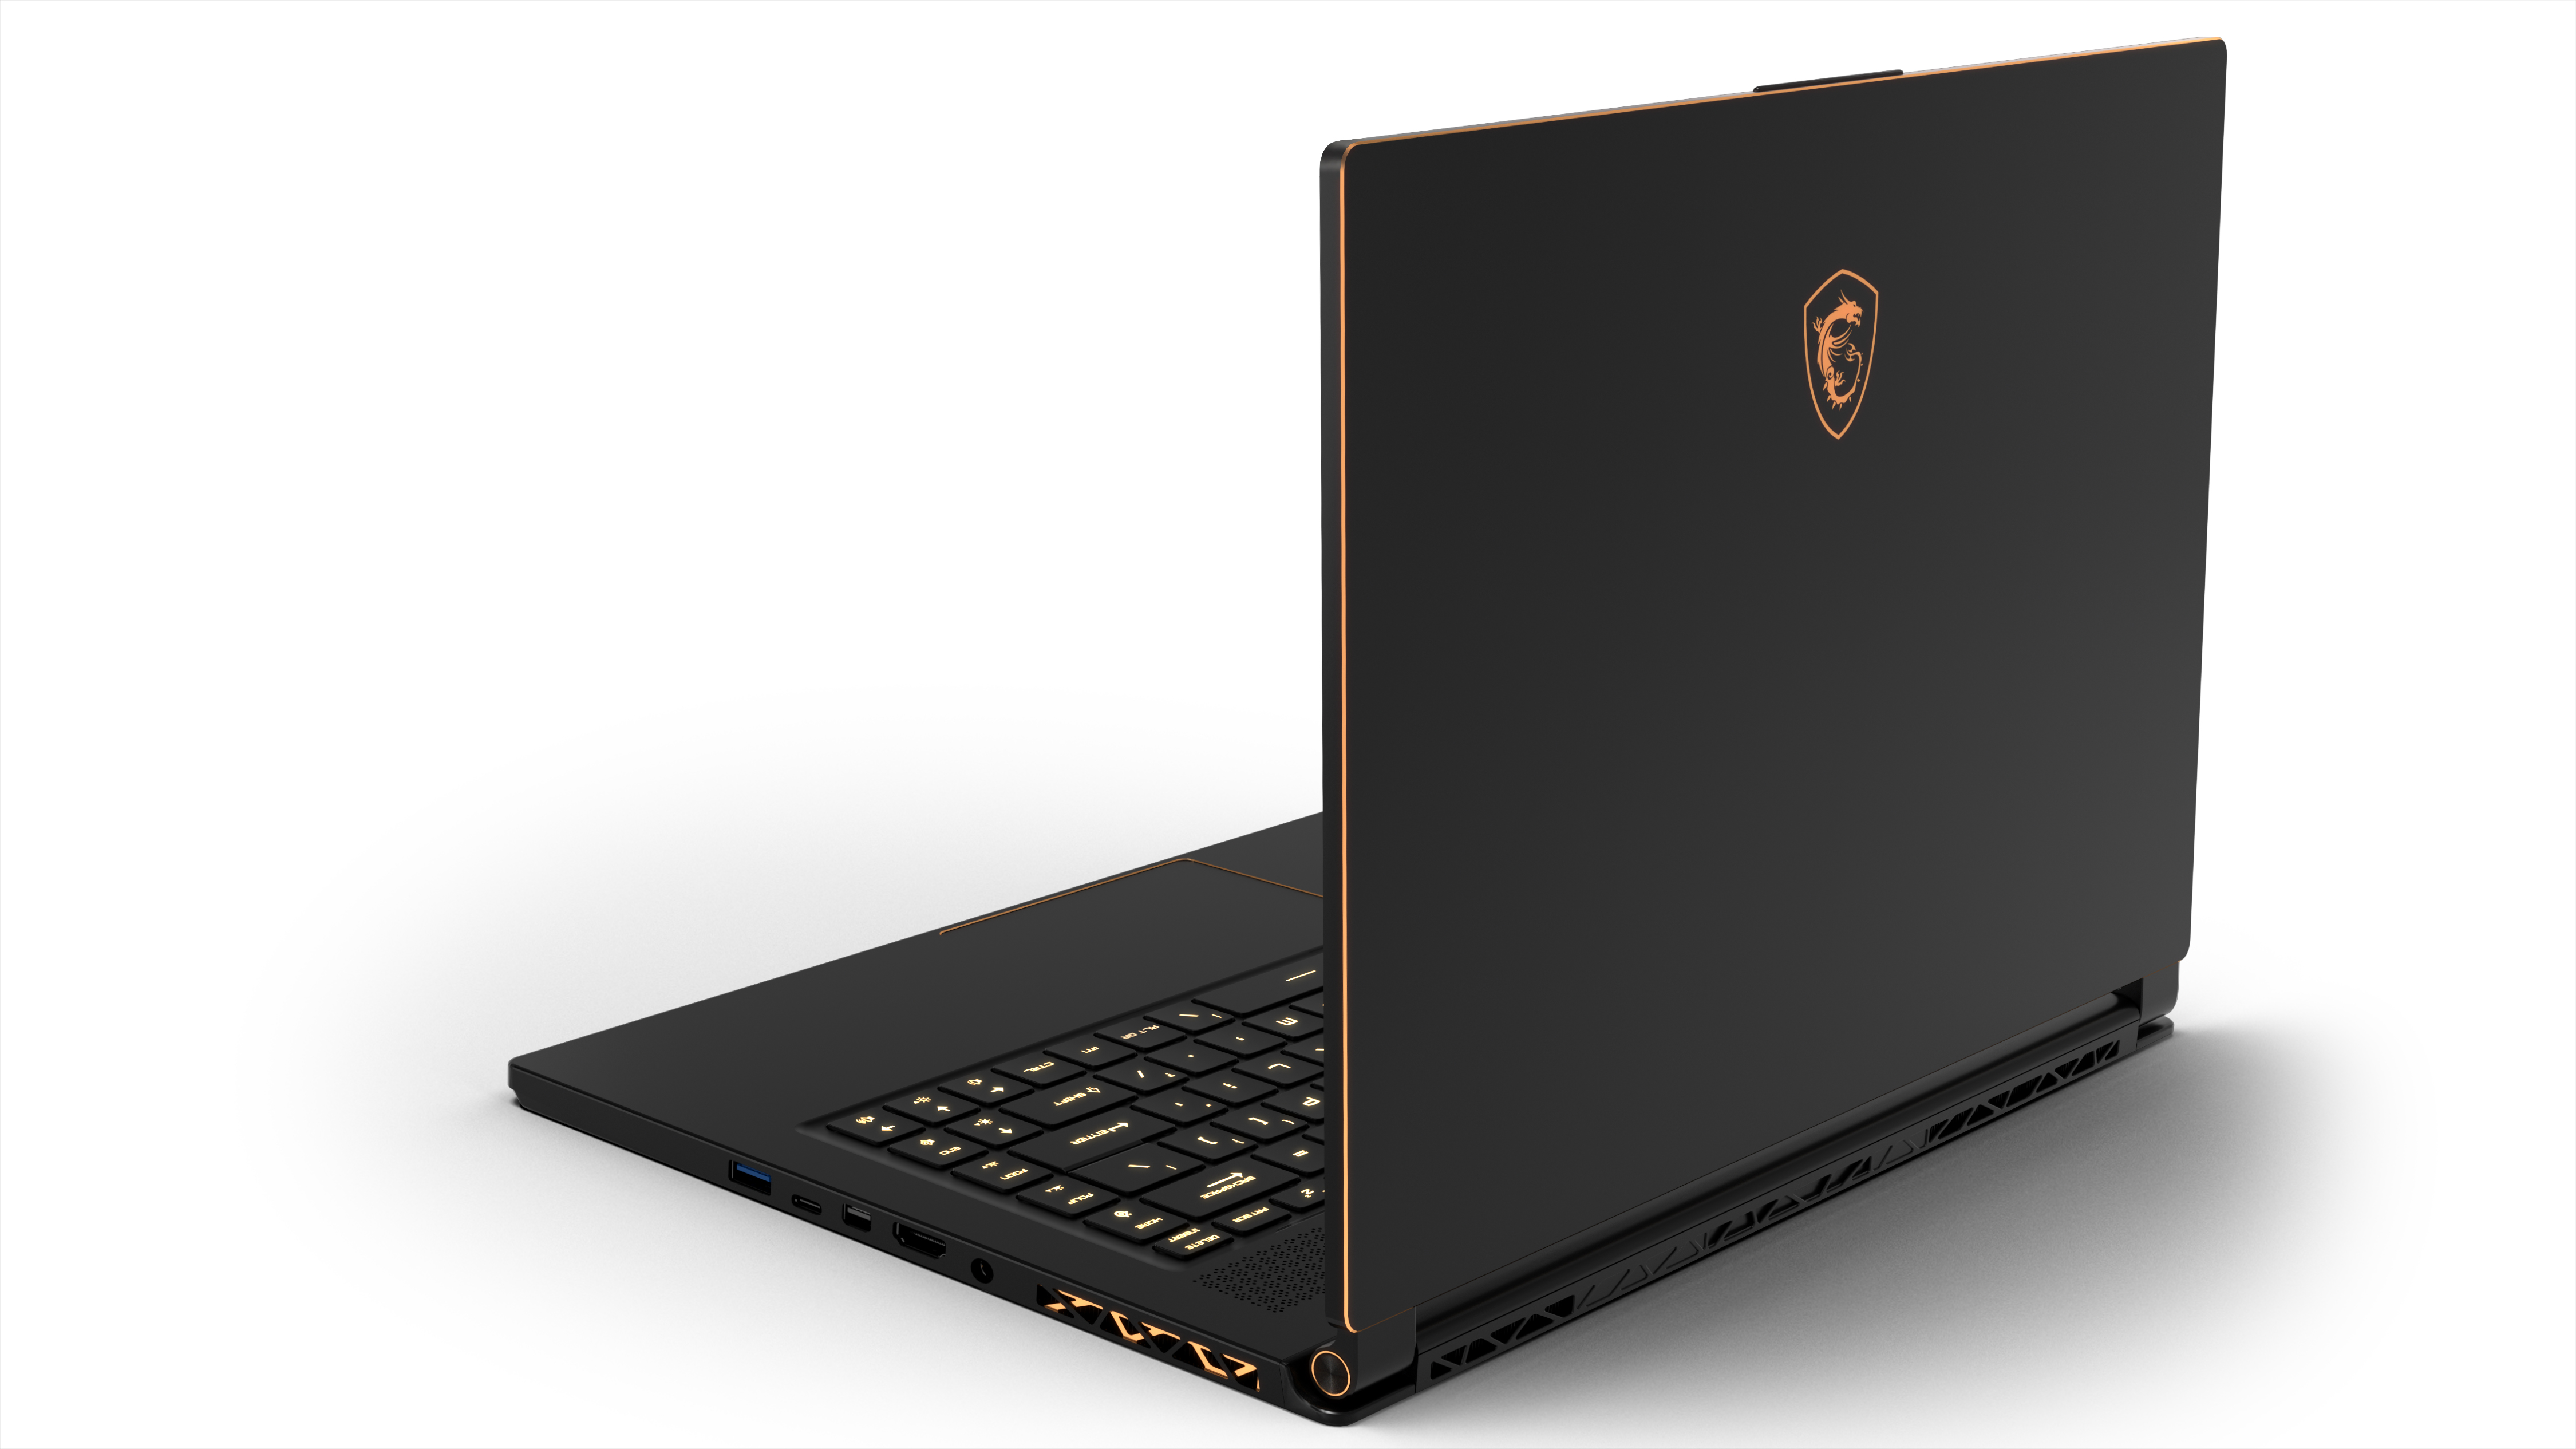 MSI GS65 Stealth Thin photo 4